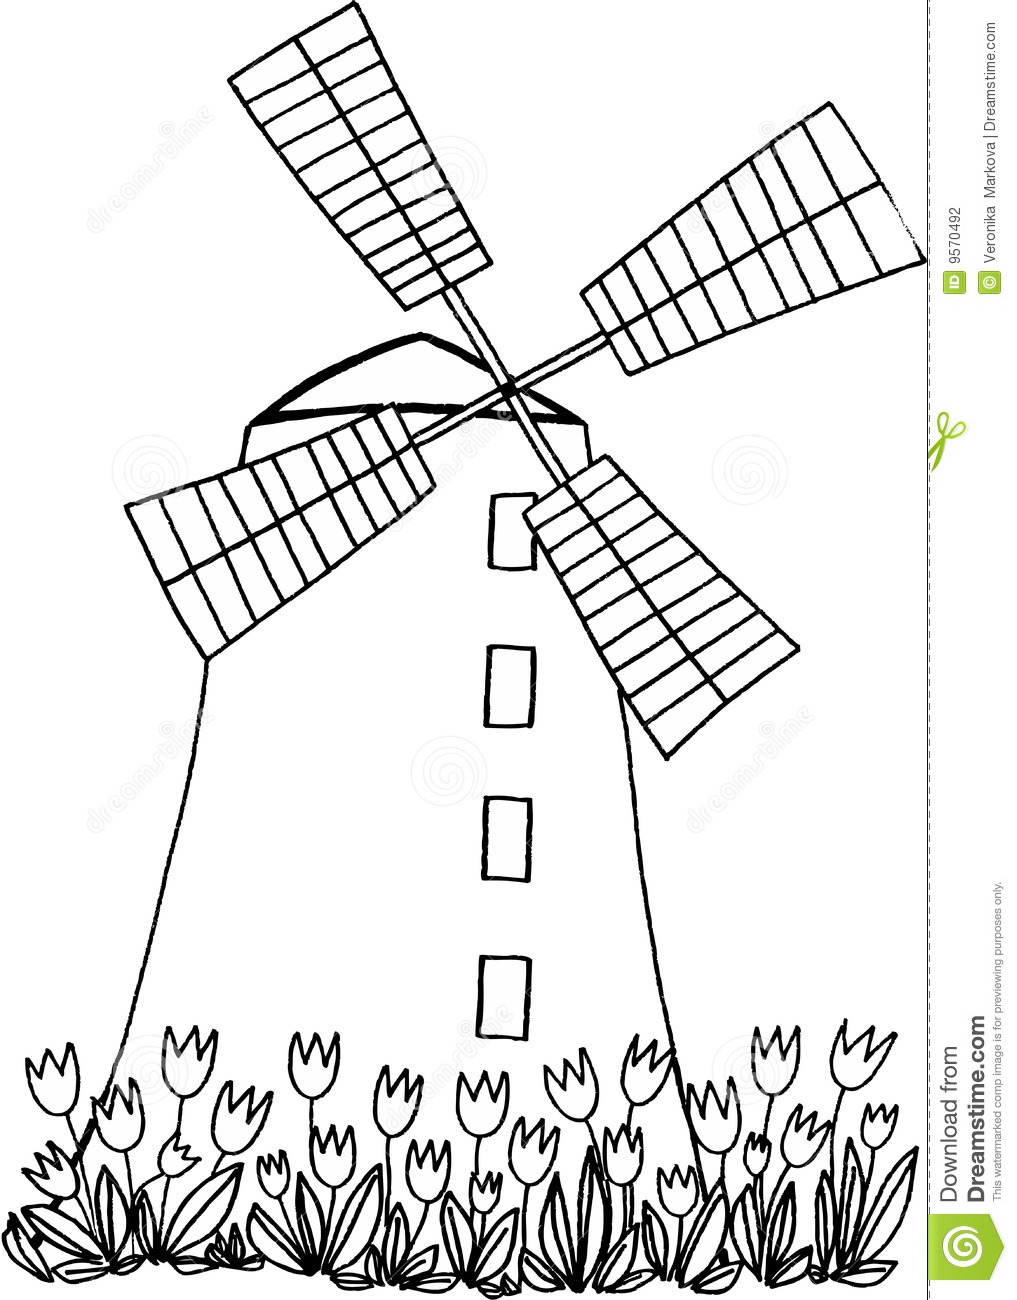 Windmill with tulips on white background. vector image.